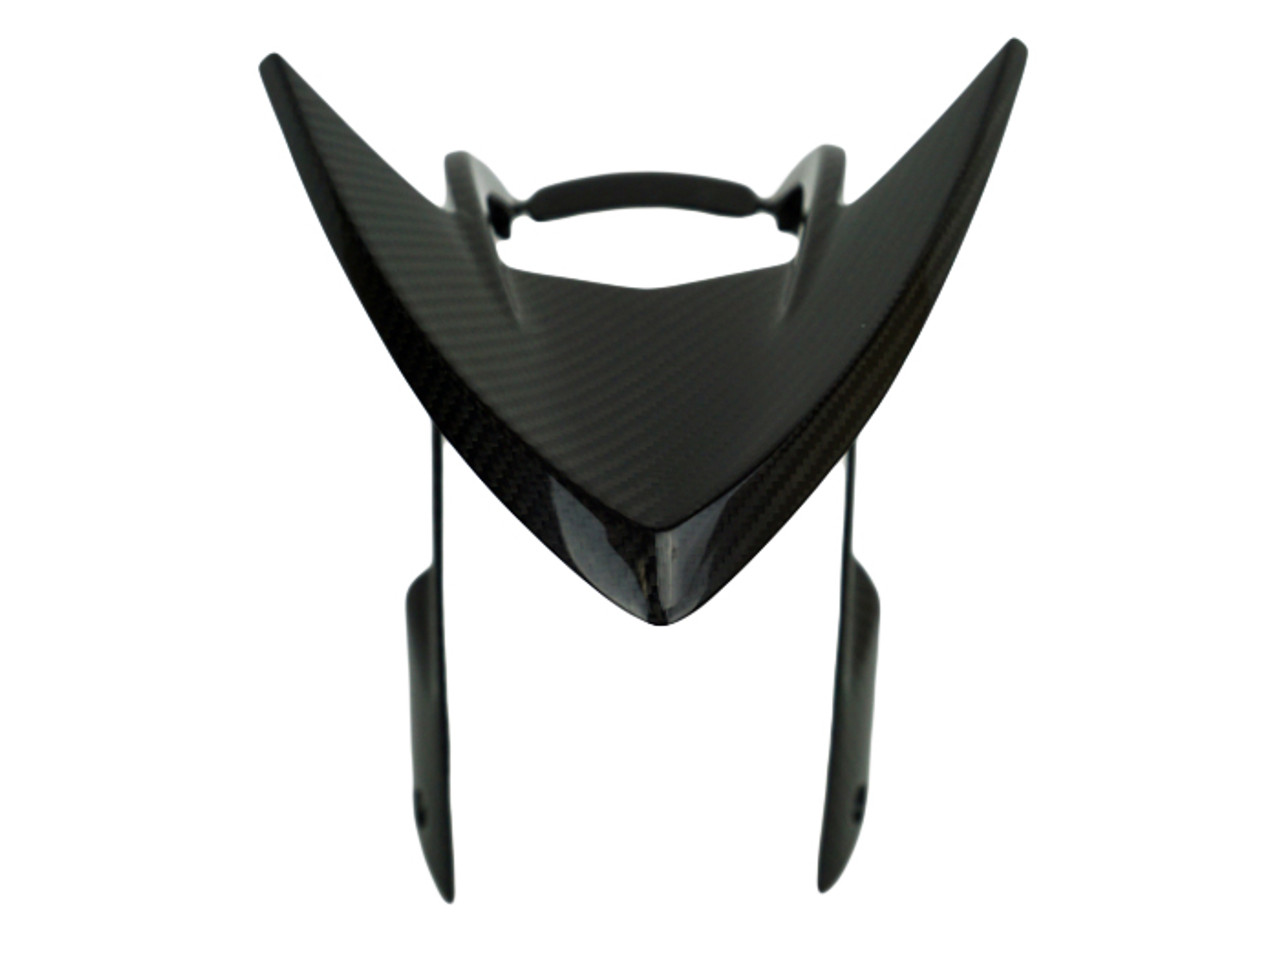 Front Fender Upper Part in Glossy Twill Weave Carbon Fiber for MV Agusta Rivale 800